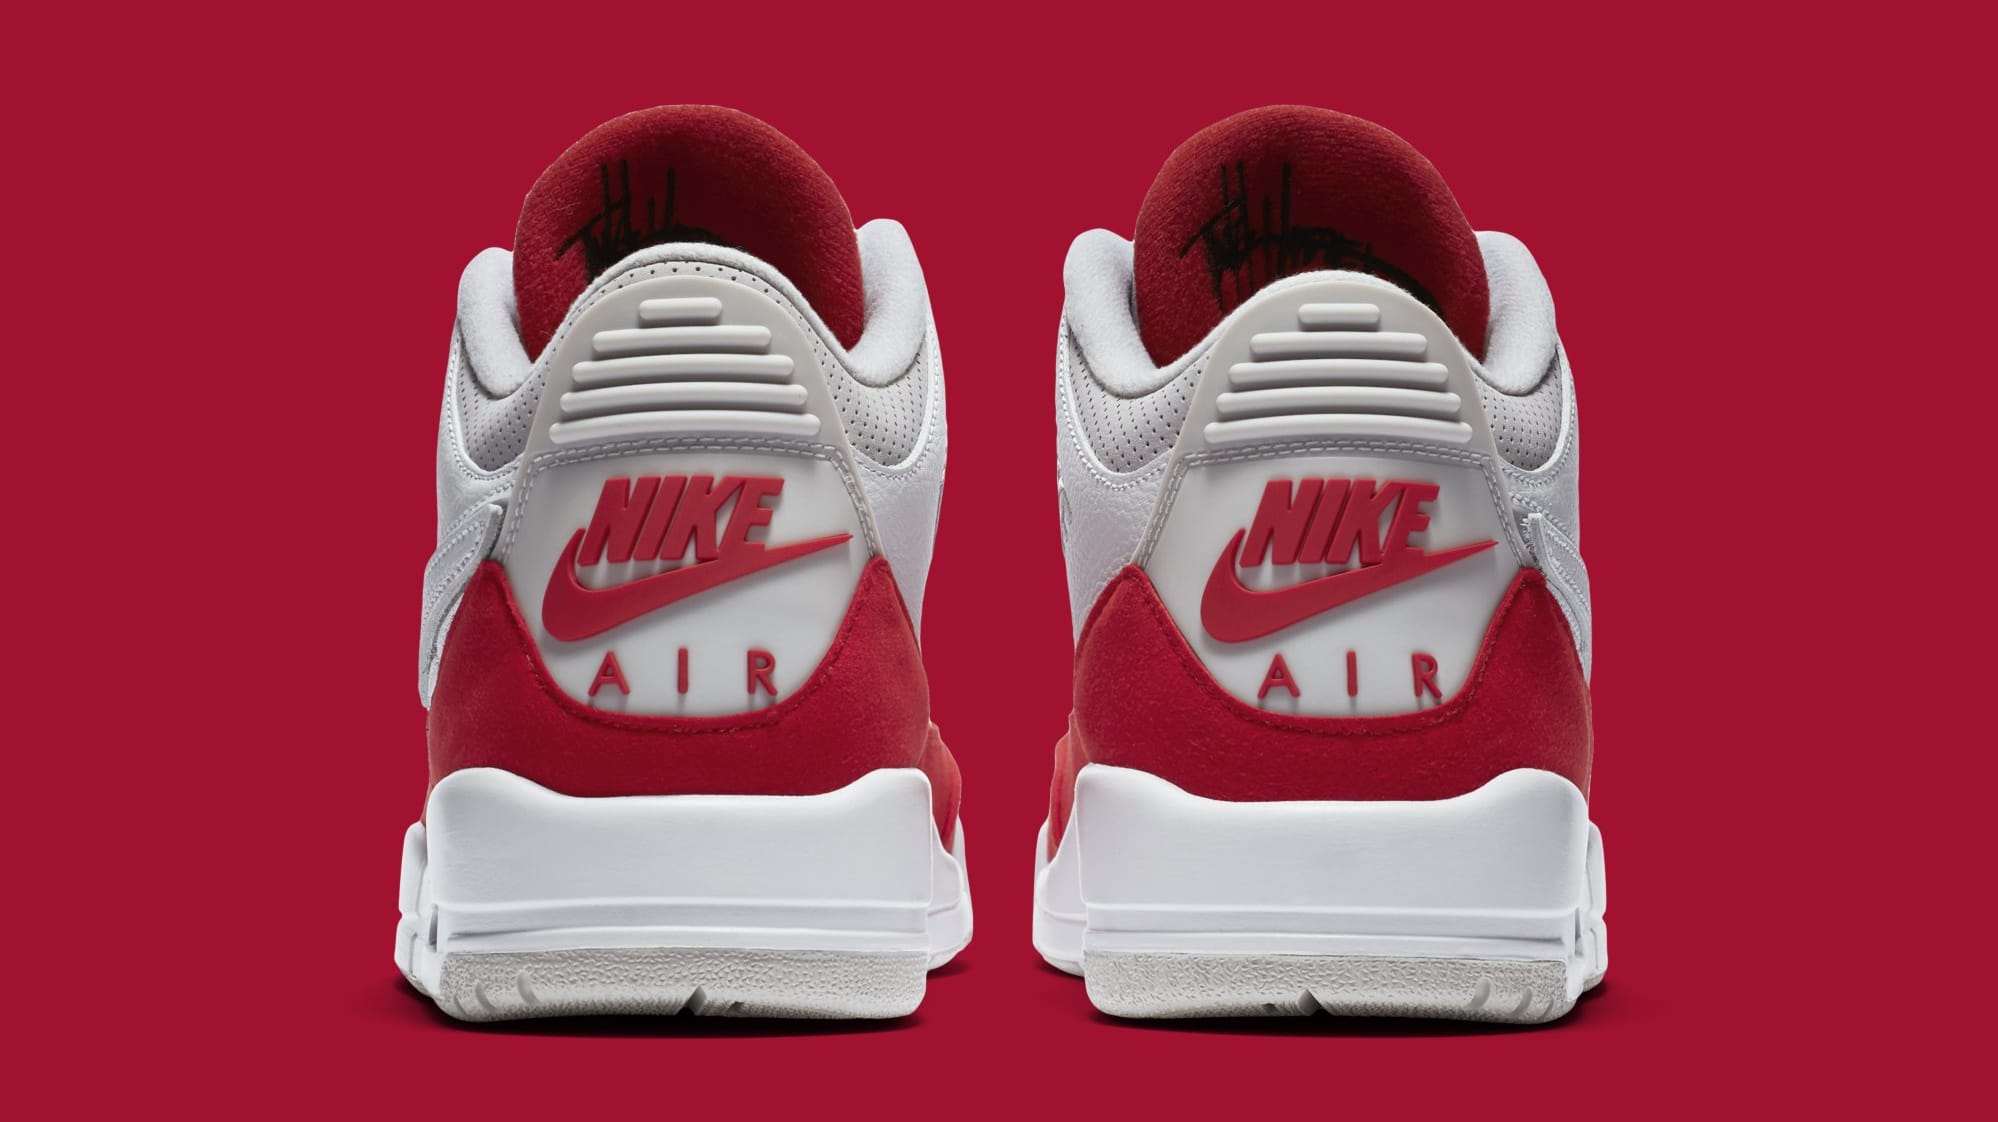 7b03ec8906 Air Jordan 3 TH SP 'Katrina' White/University Red-Neutral Grey Release Date  | Sole Collector